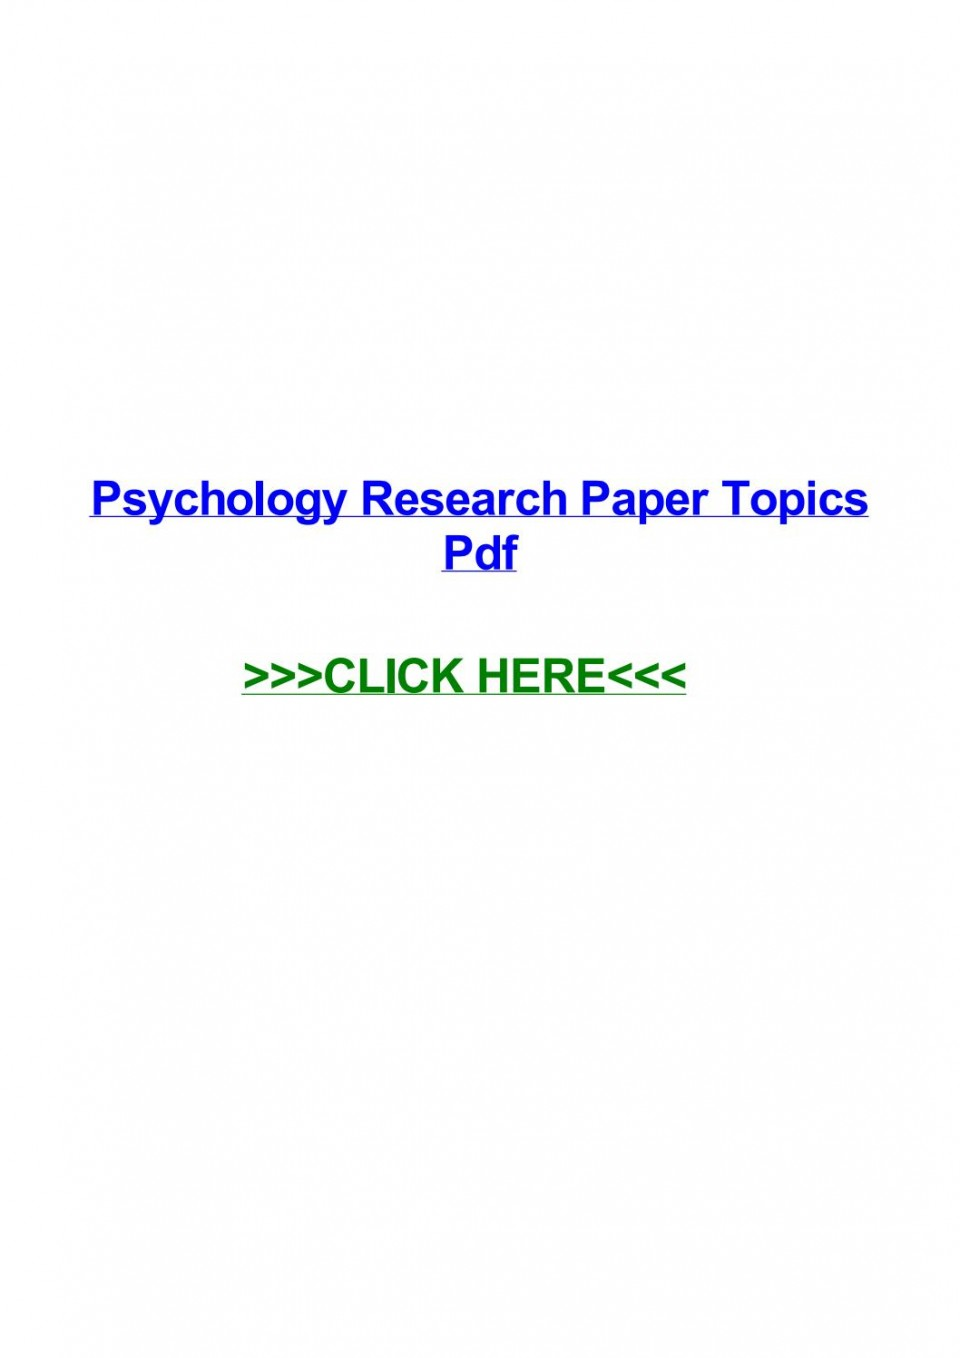 017 Page 1 Research Paper Psychology Striking Topics On Dreams Depression For High School Students 960